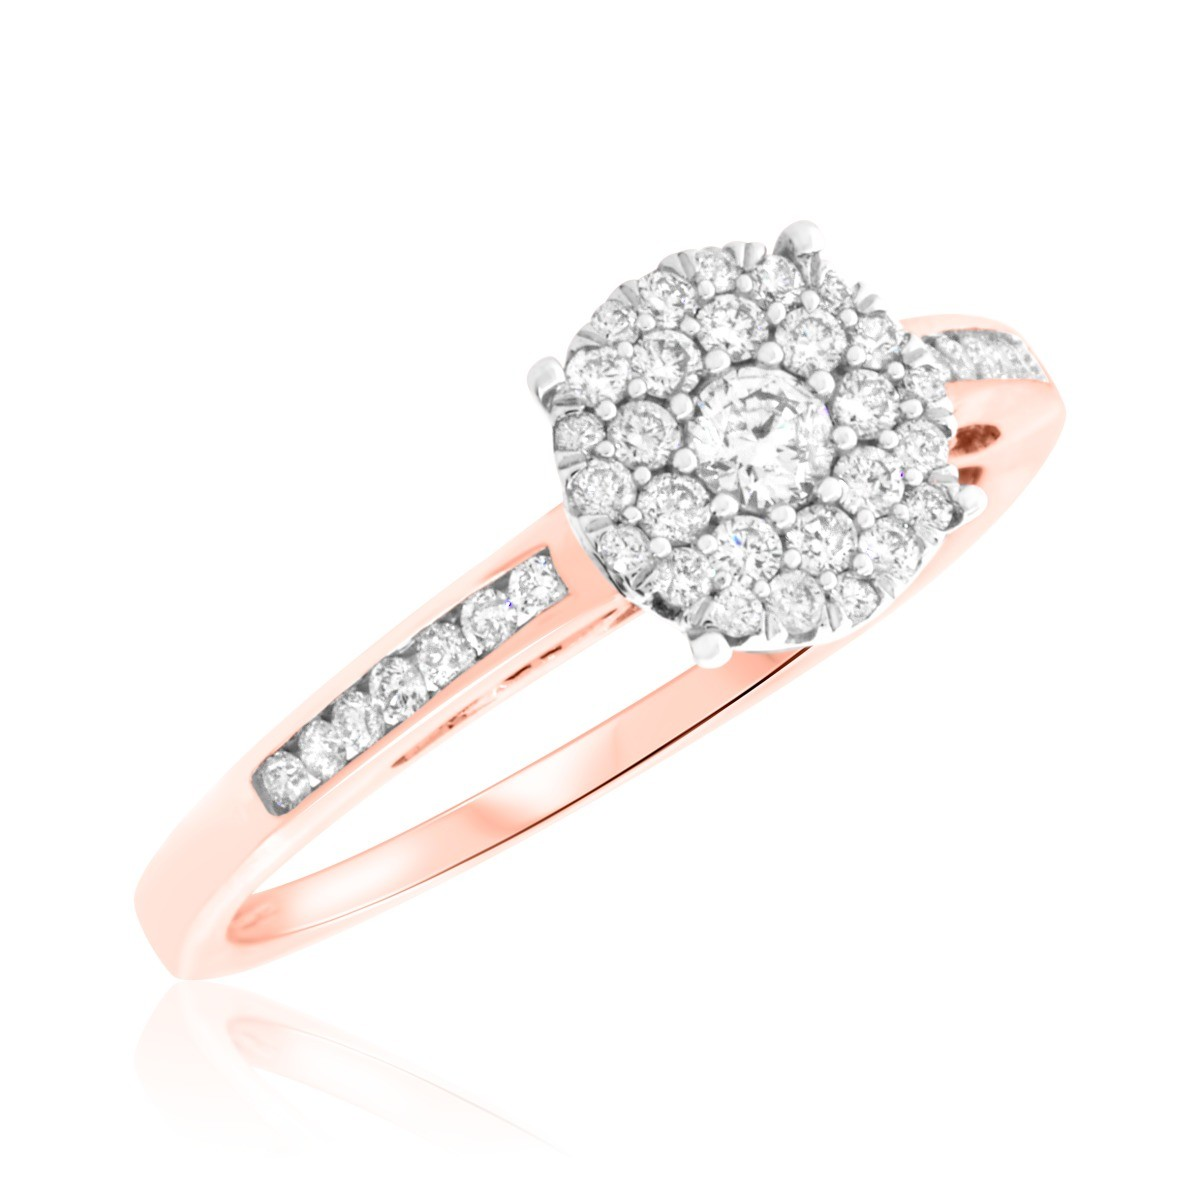 1/3 Carat T.W. Round Cut Diamond Ladies Engagement Ring 14K Rose Gold